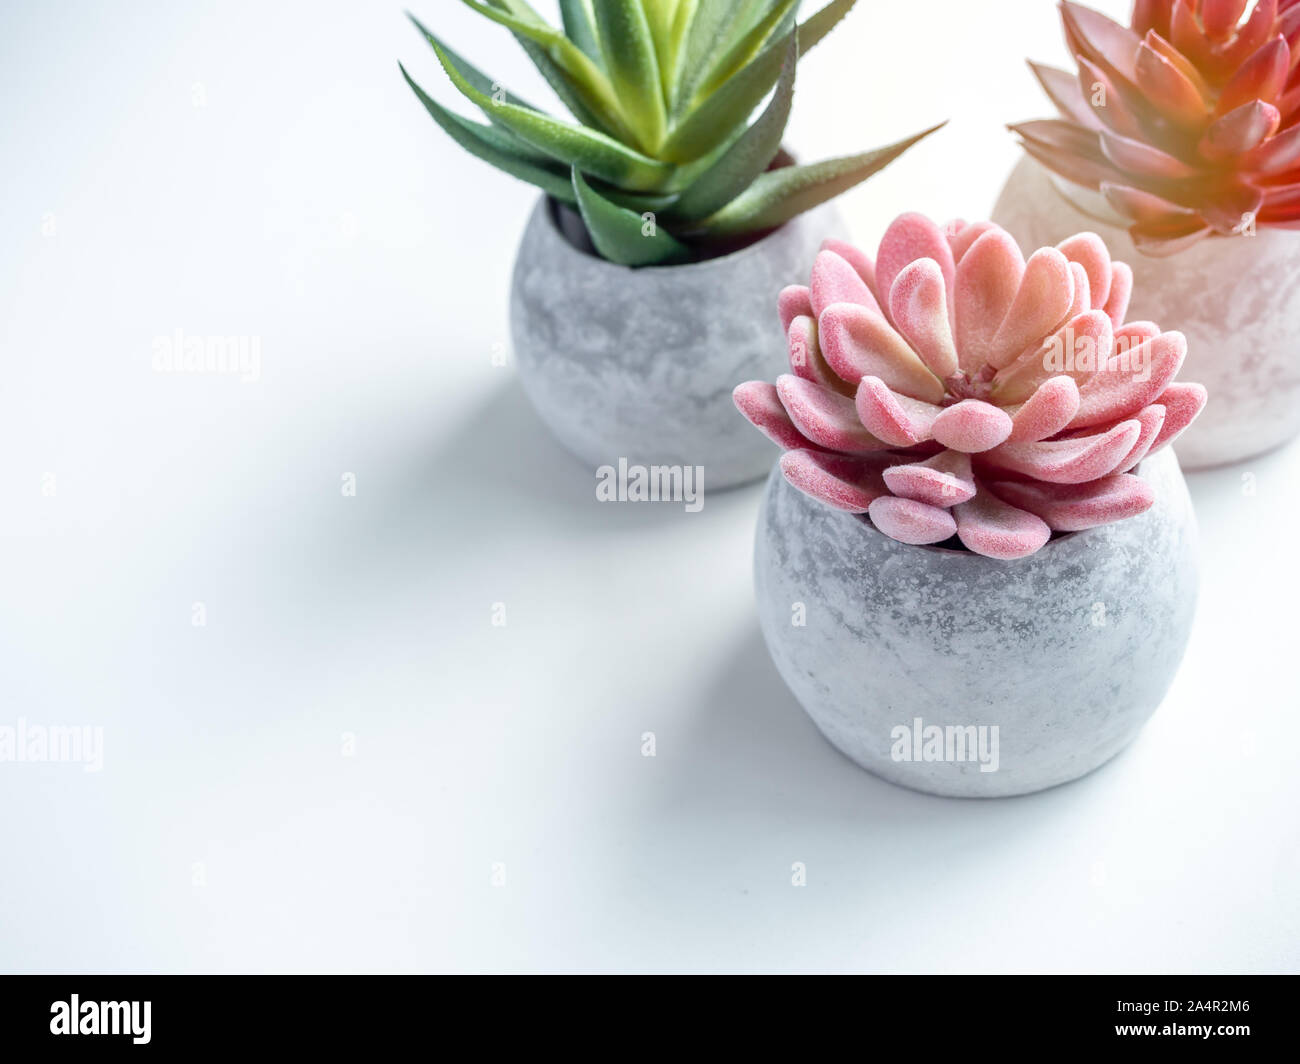 Concrete pots minimal style. Pink, red and green succulent plants in modern round concrete planters on white background with copy space, top view. Stock Photo